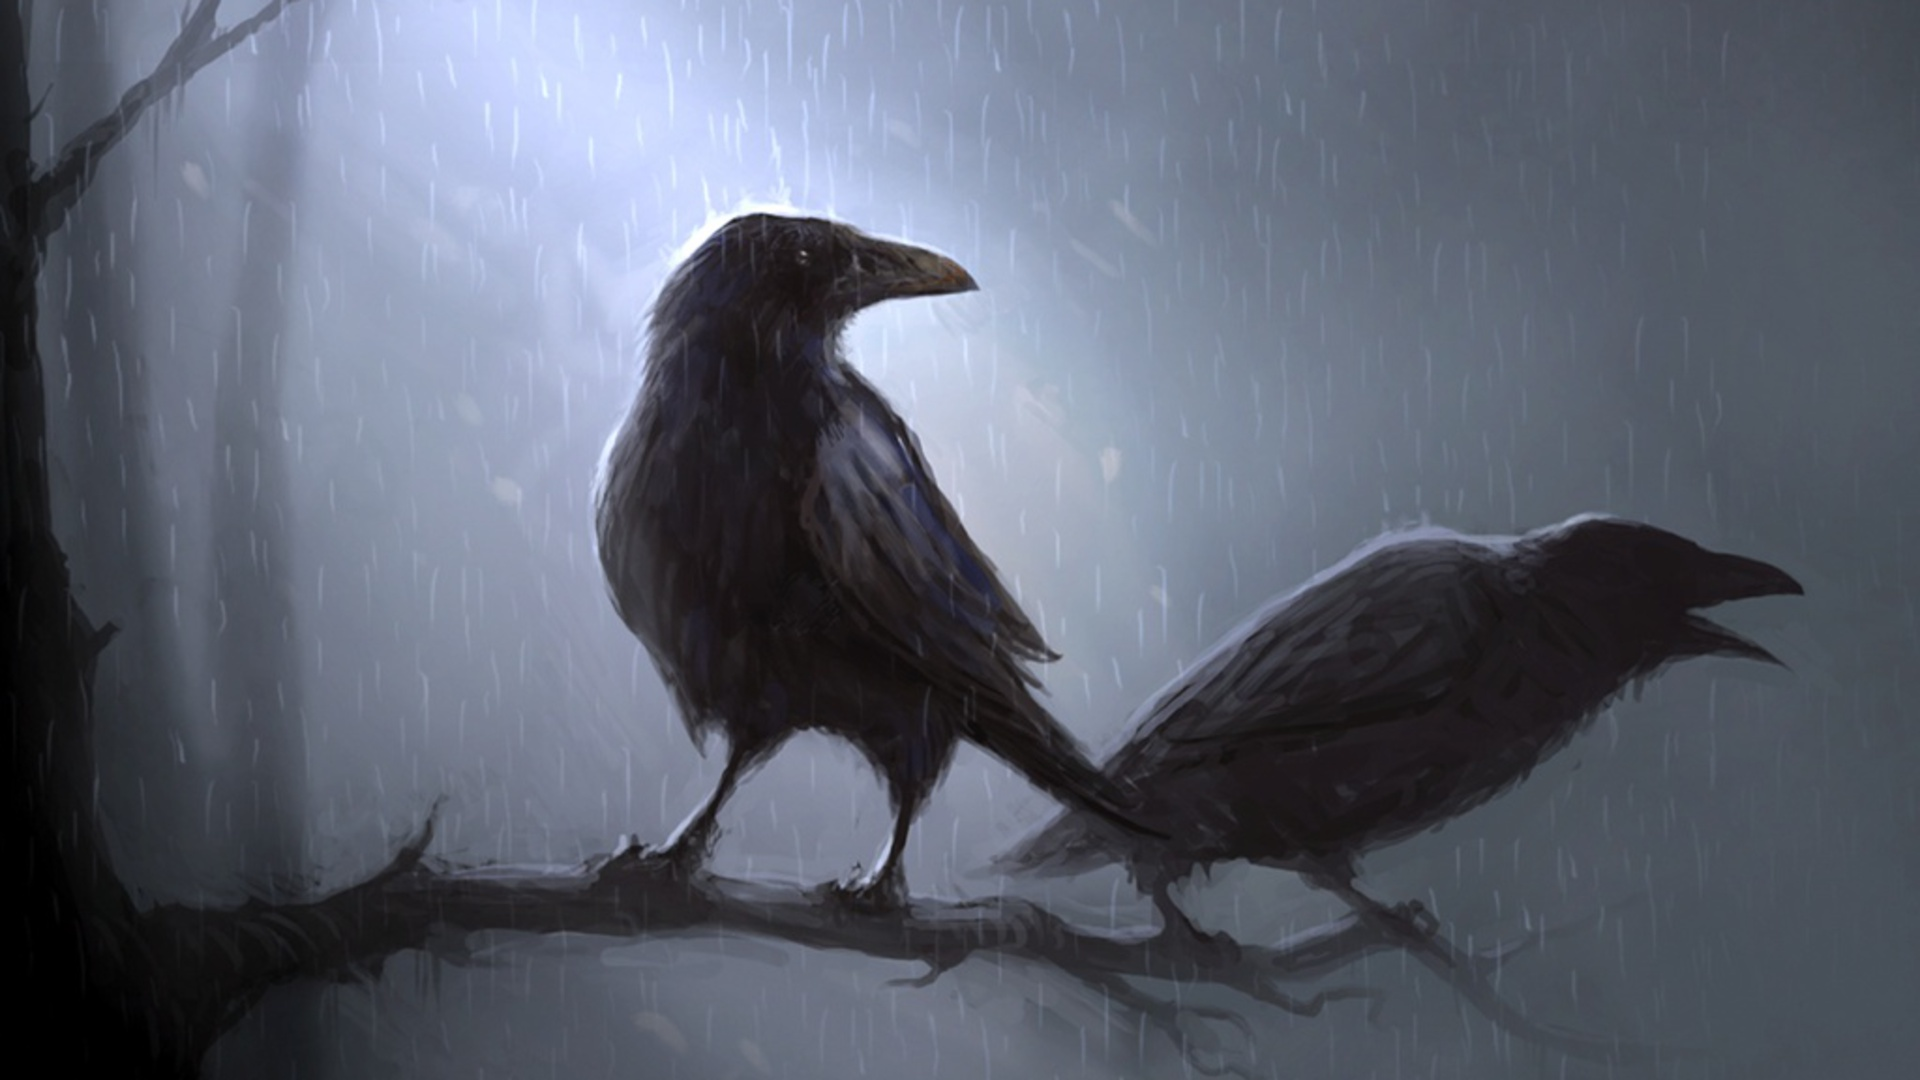 62 Crow HD Wallpapers | Background Images - Wallpaper Abyss